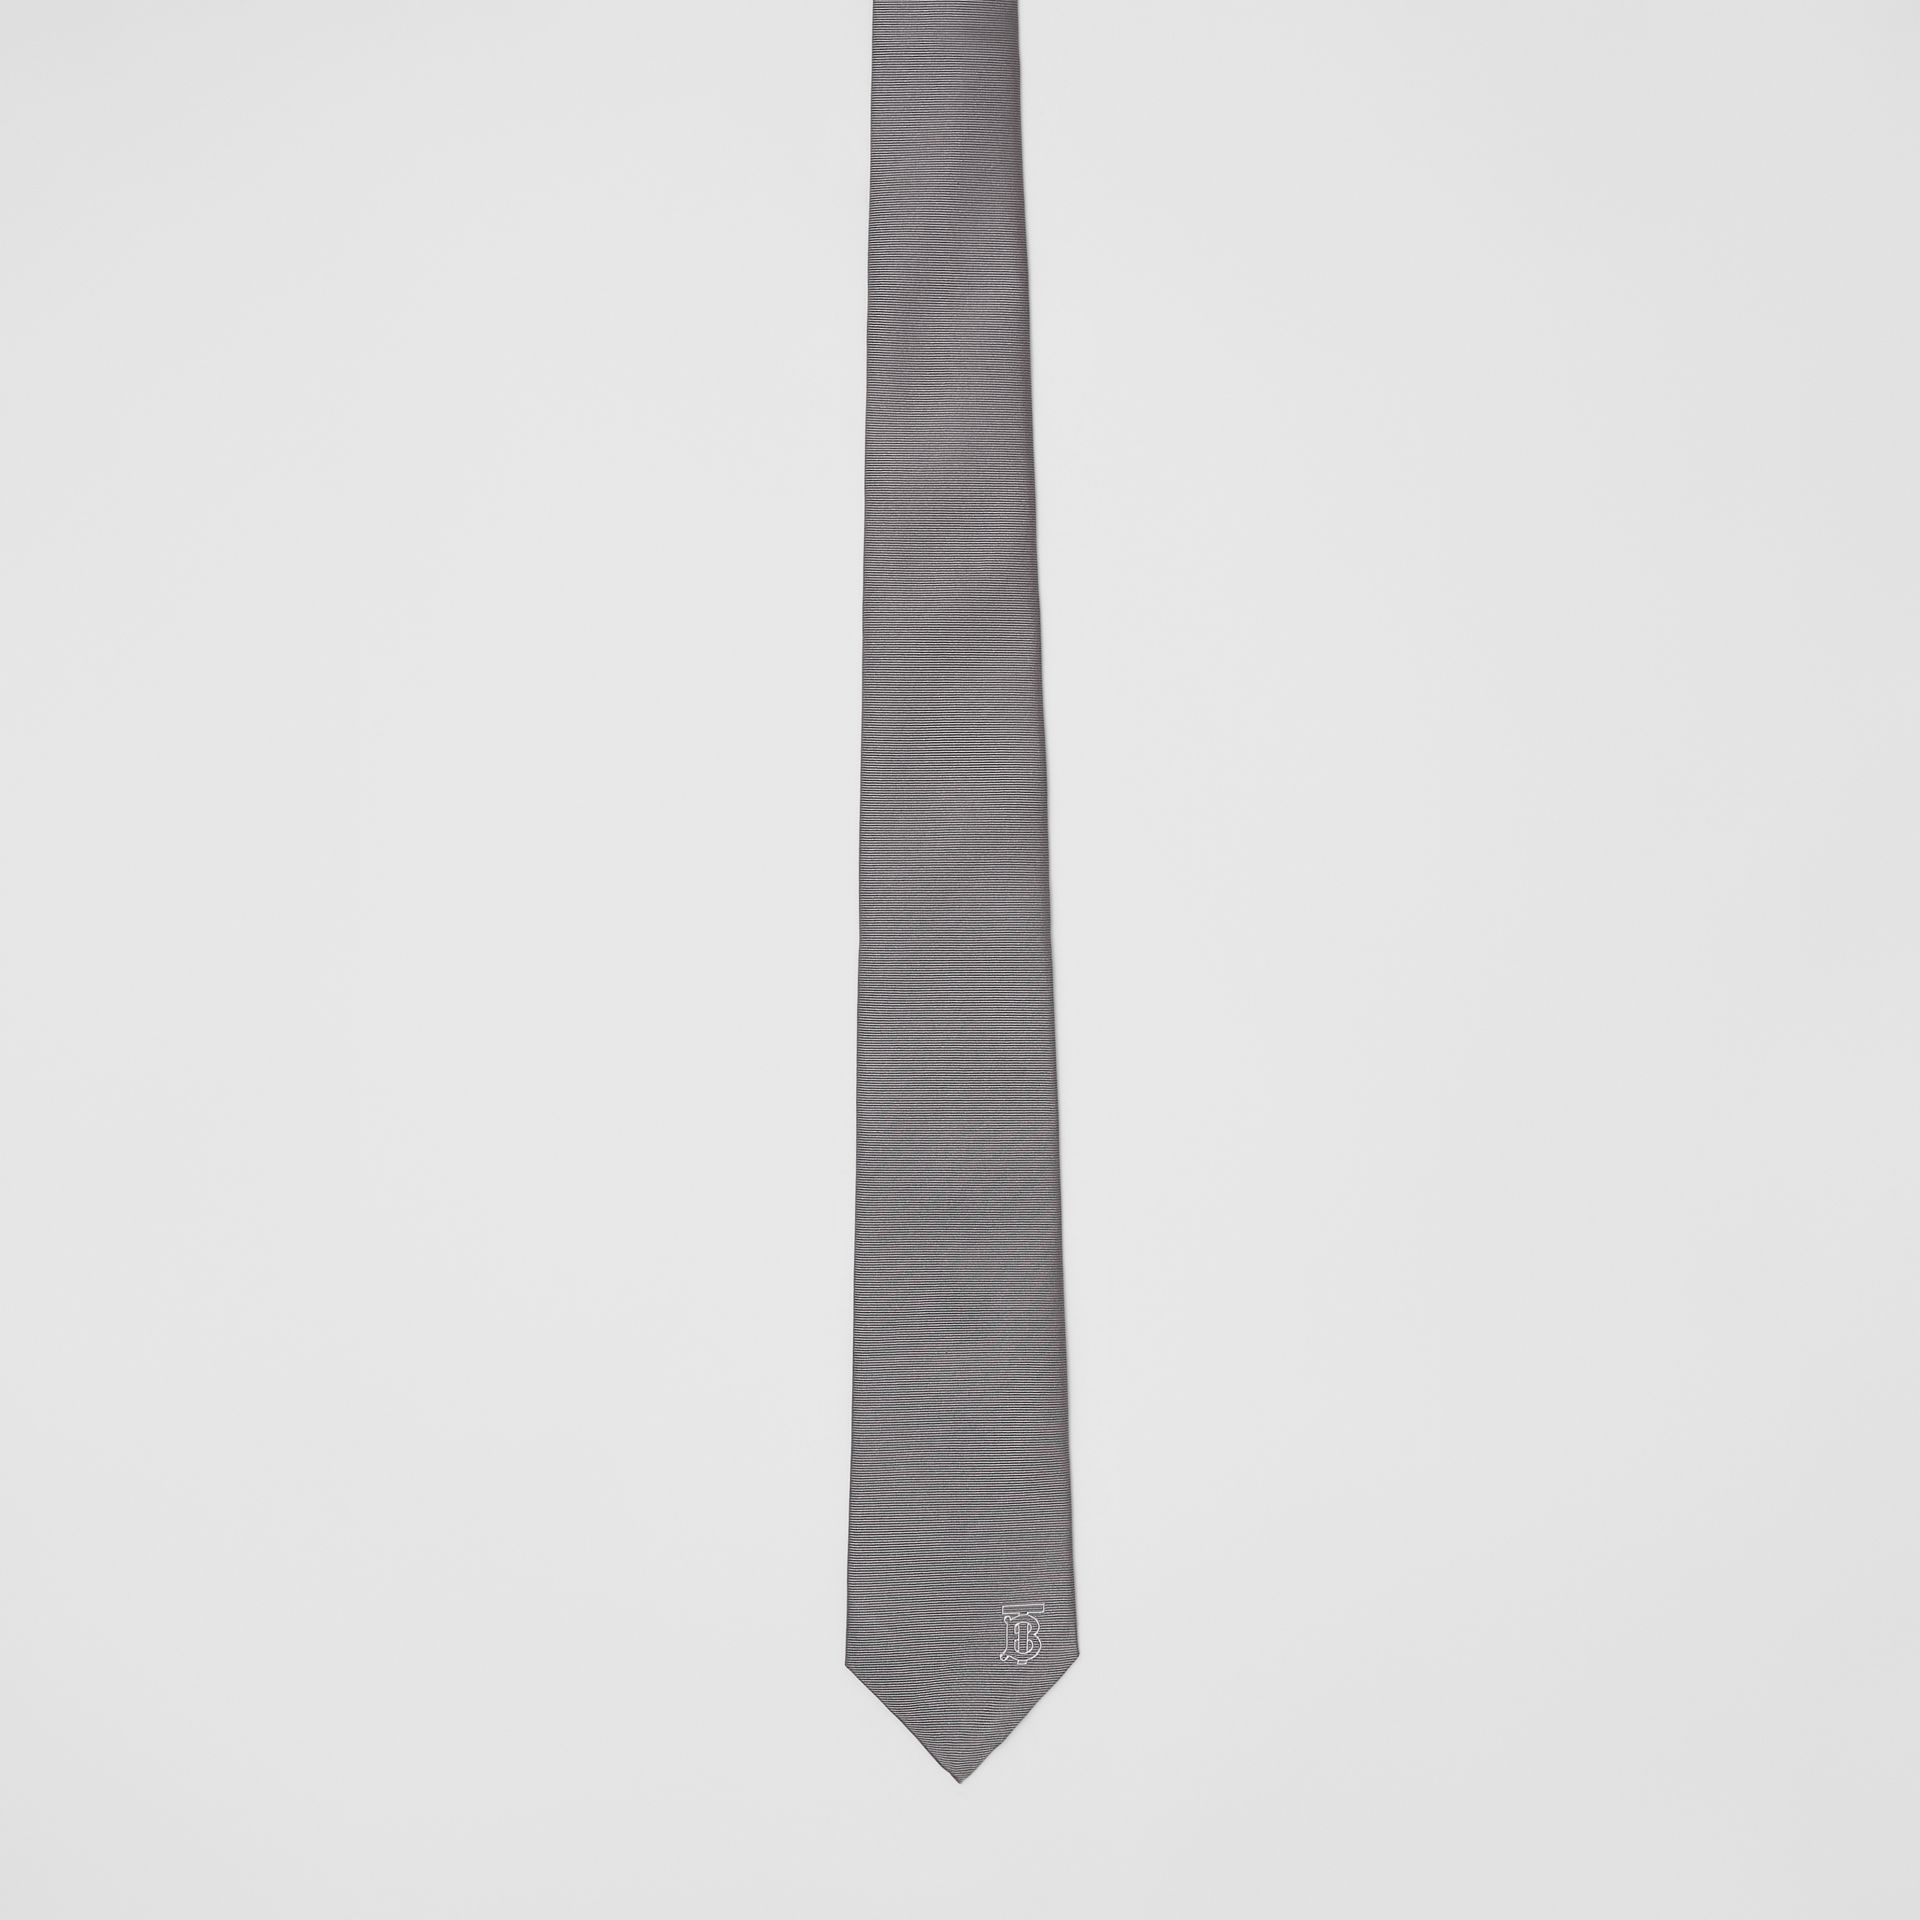 Classic Cut Monogram Motif Silk Tie in Mid Grey - Men | Burberry Australia - gallery image 2